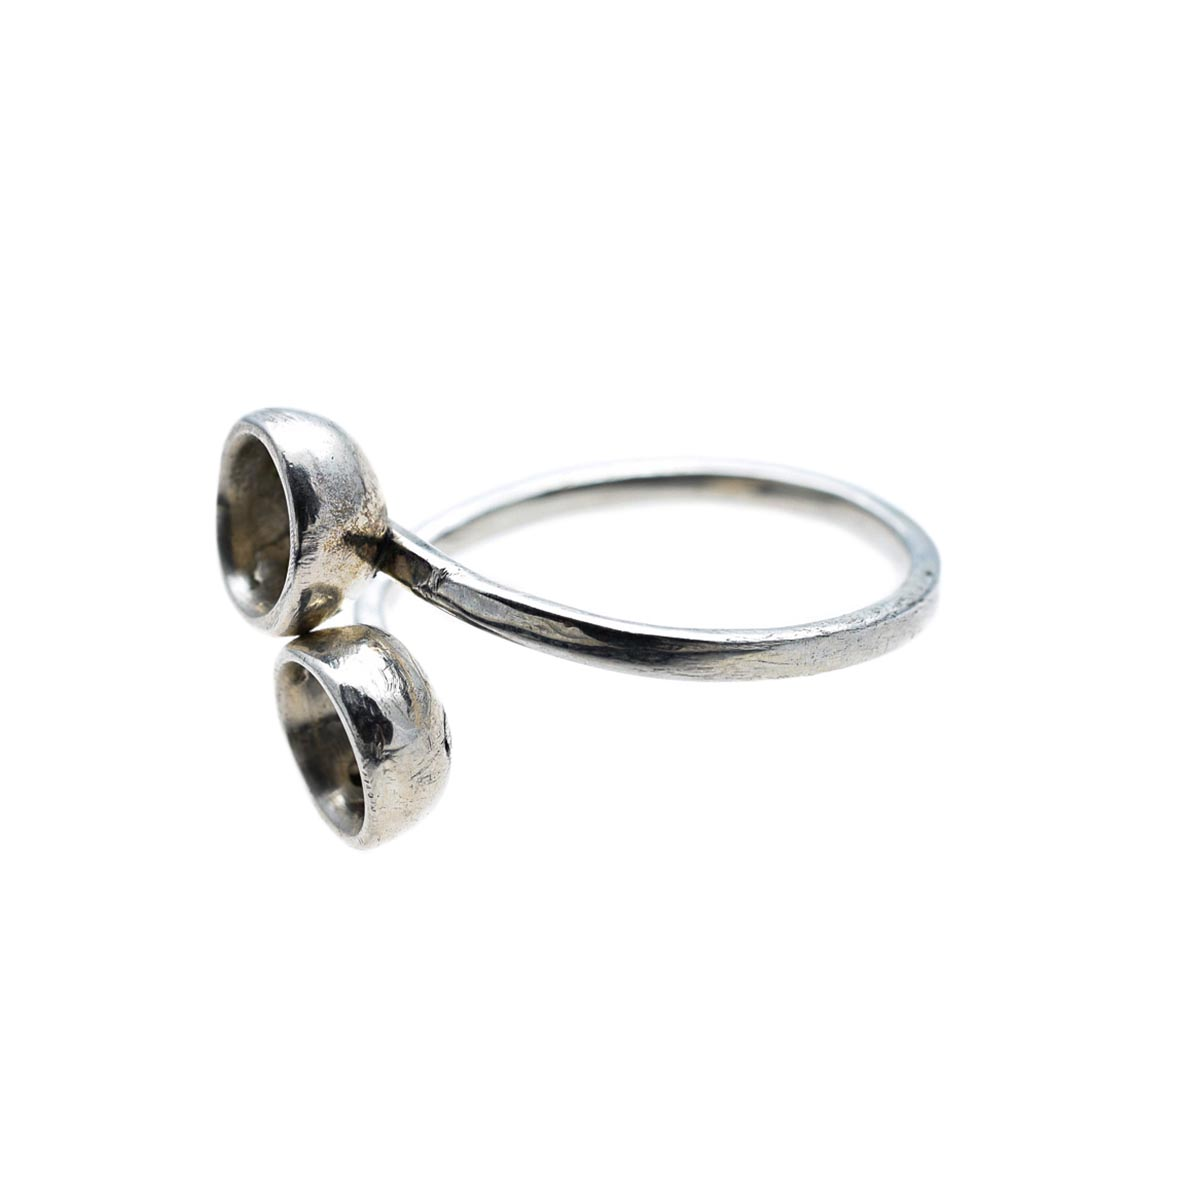 Silver ring designed and made by Katerina Glinou